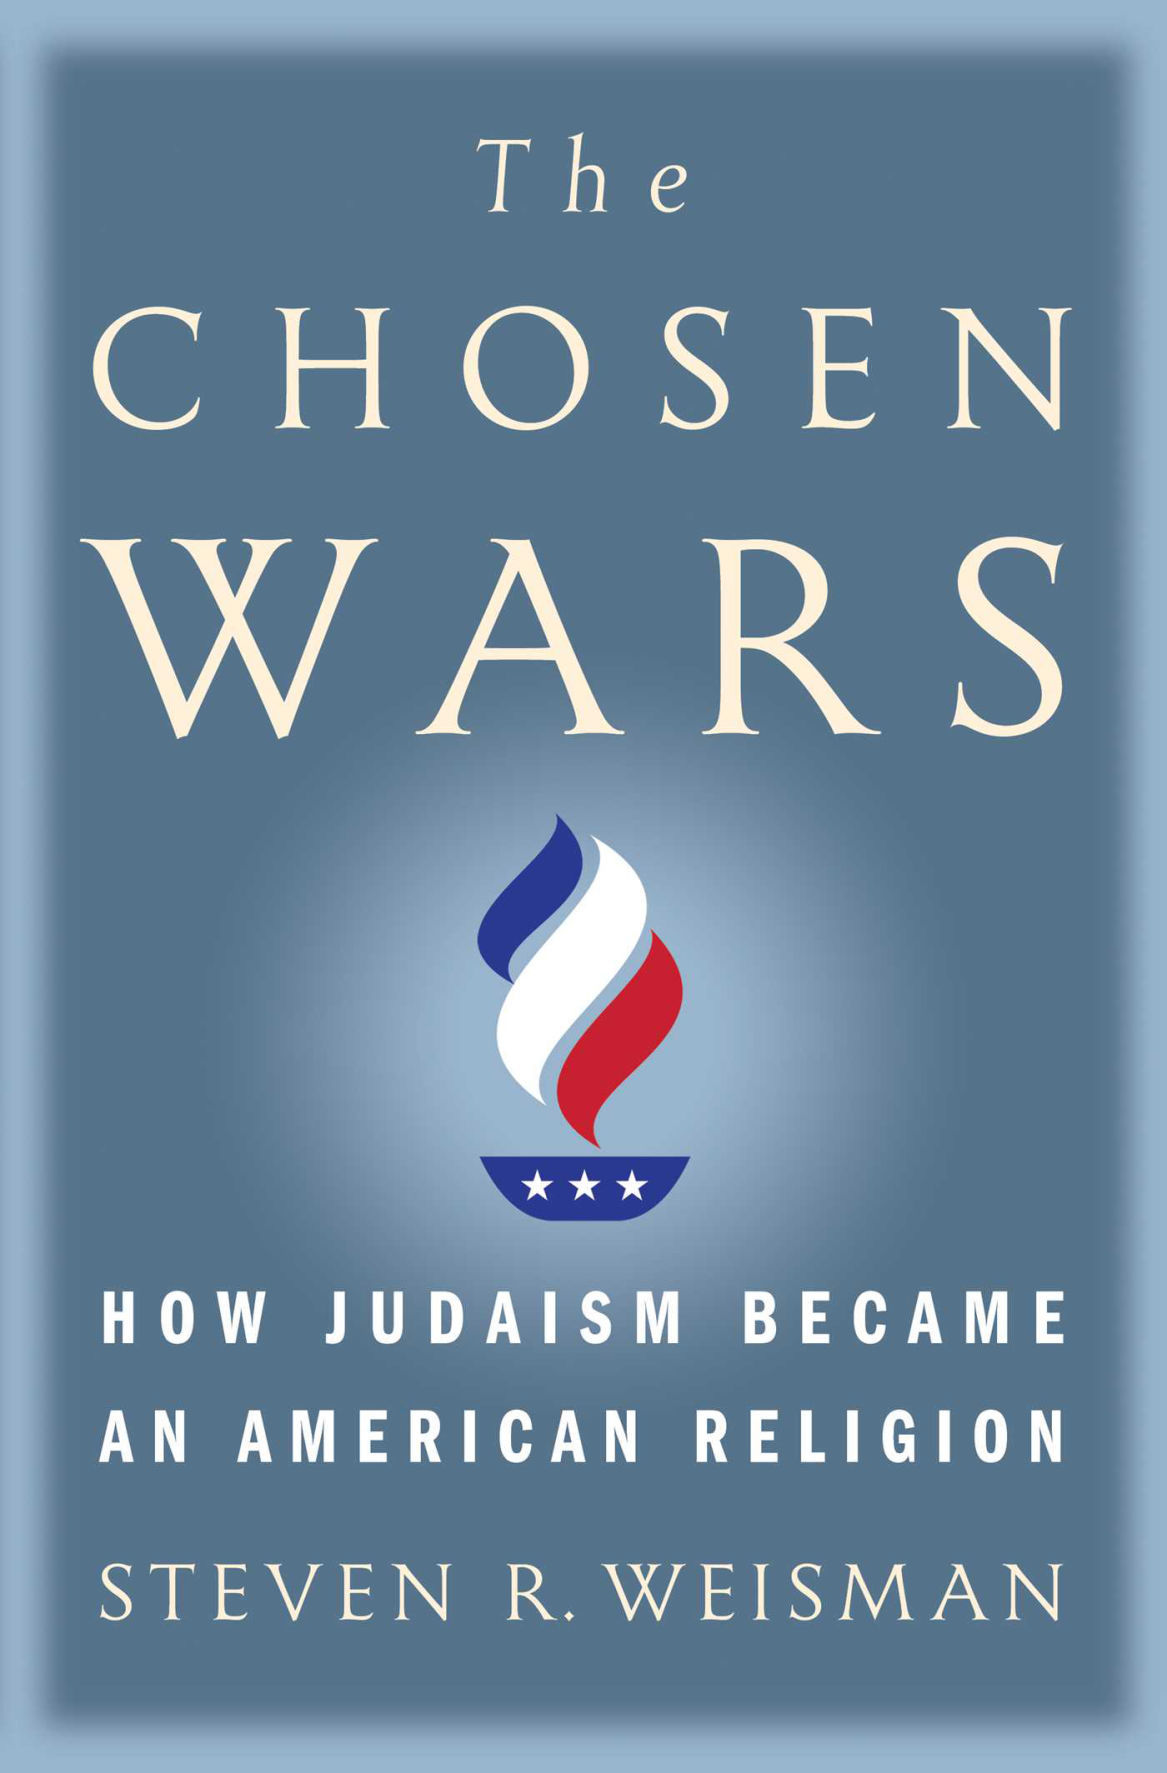 Review: The arguments that forged American Judaism | Features ...